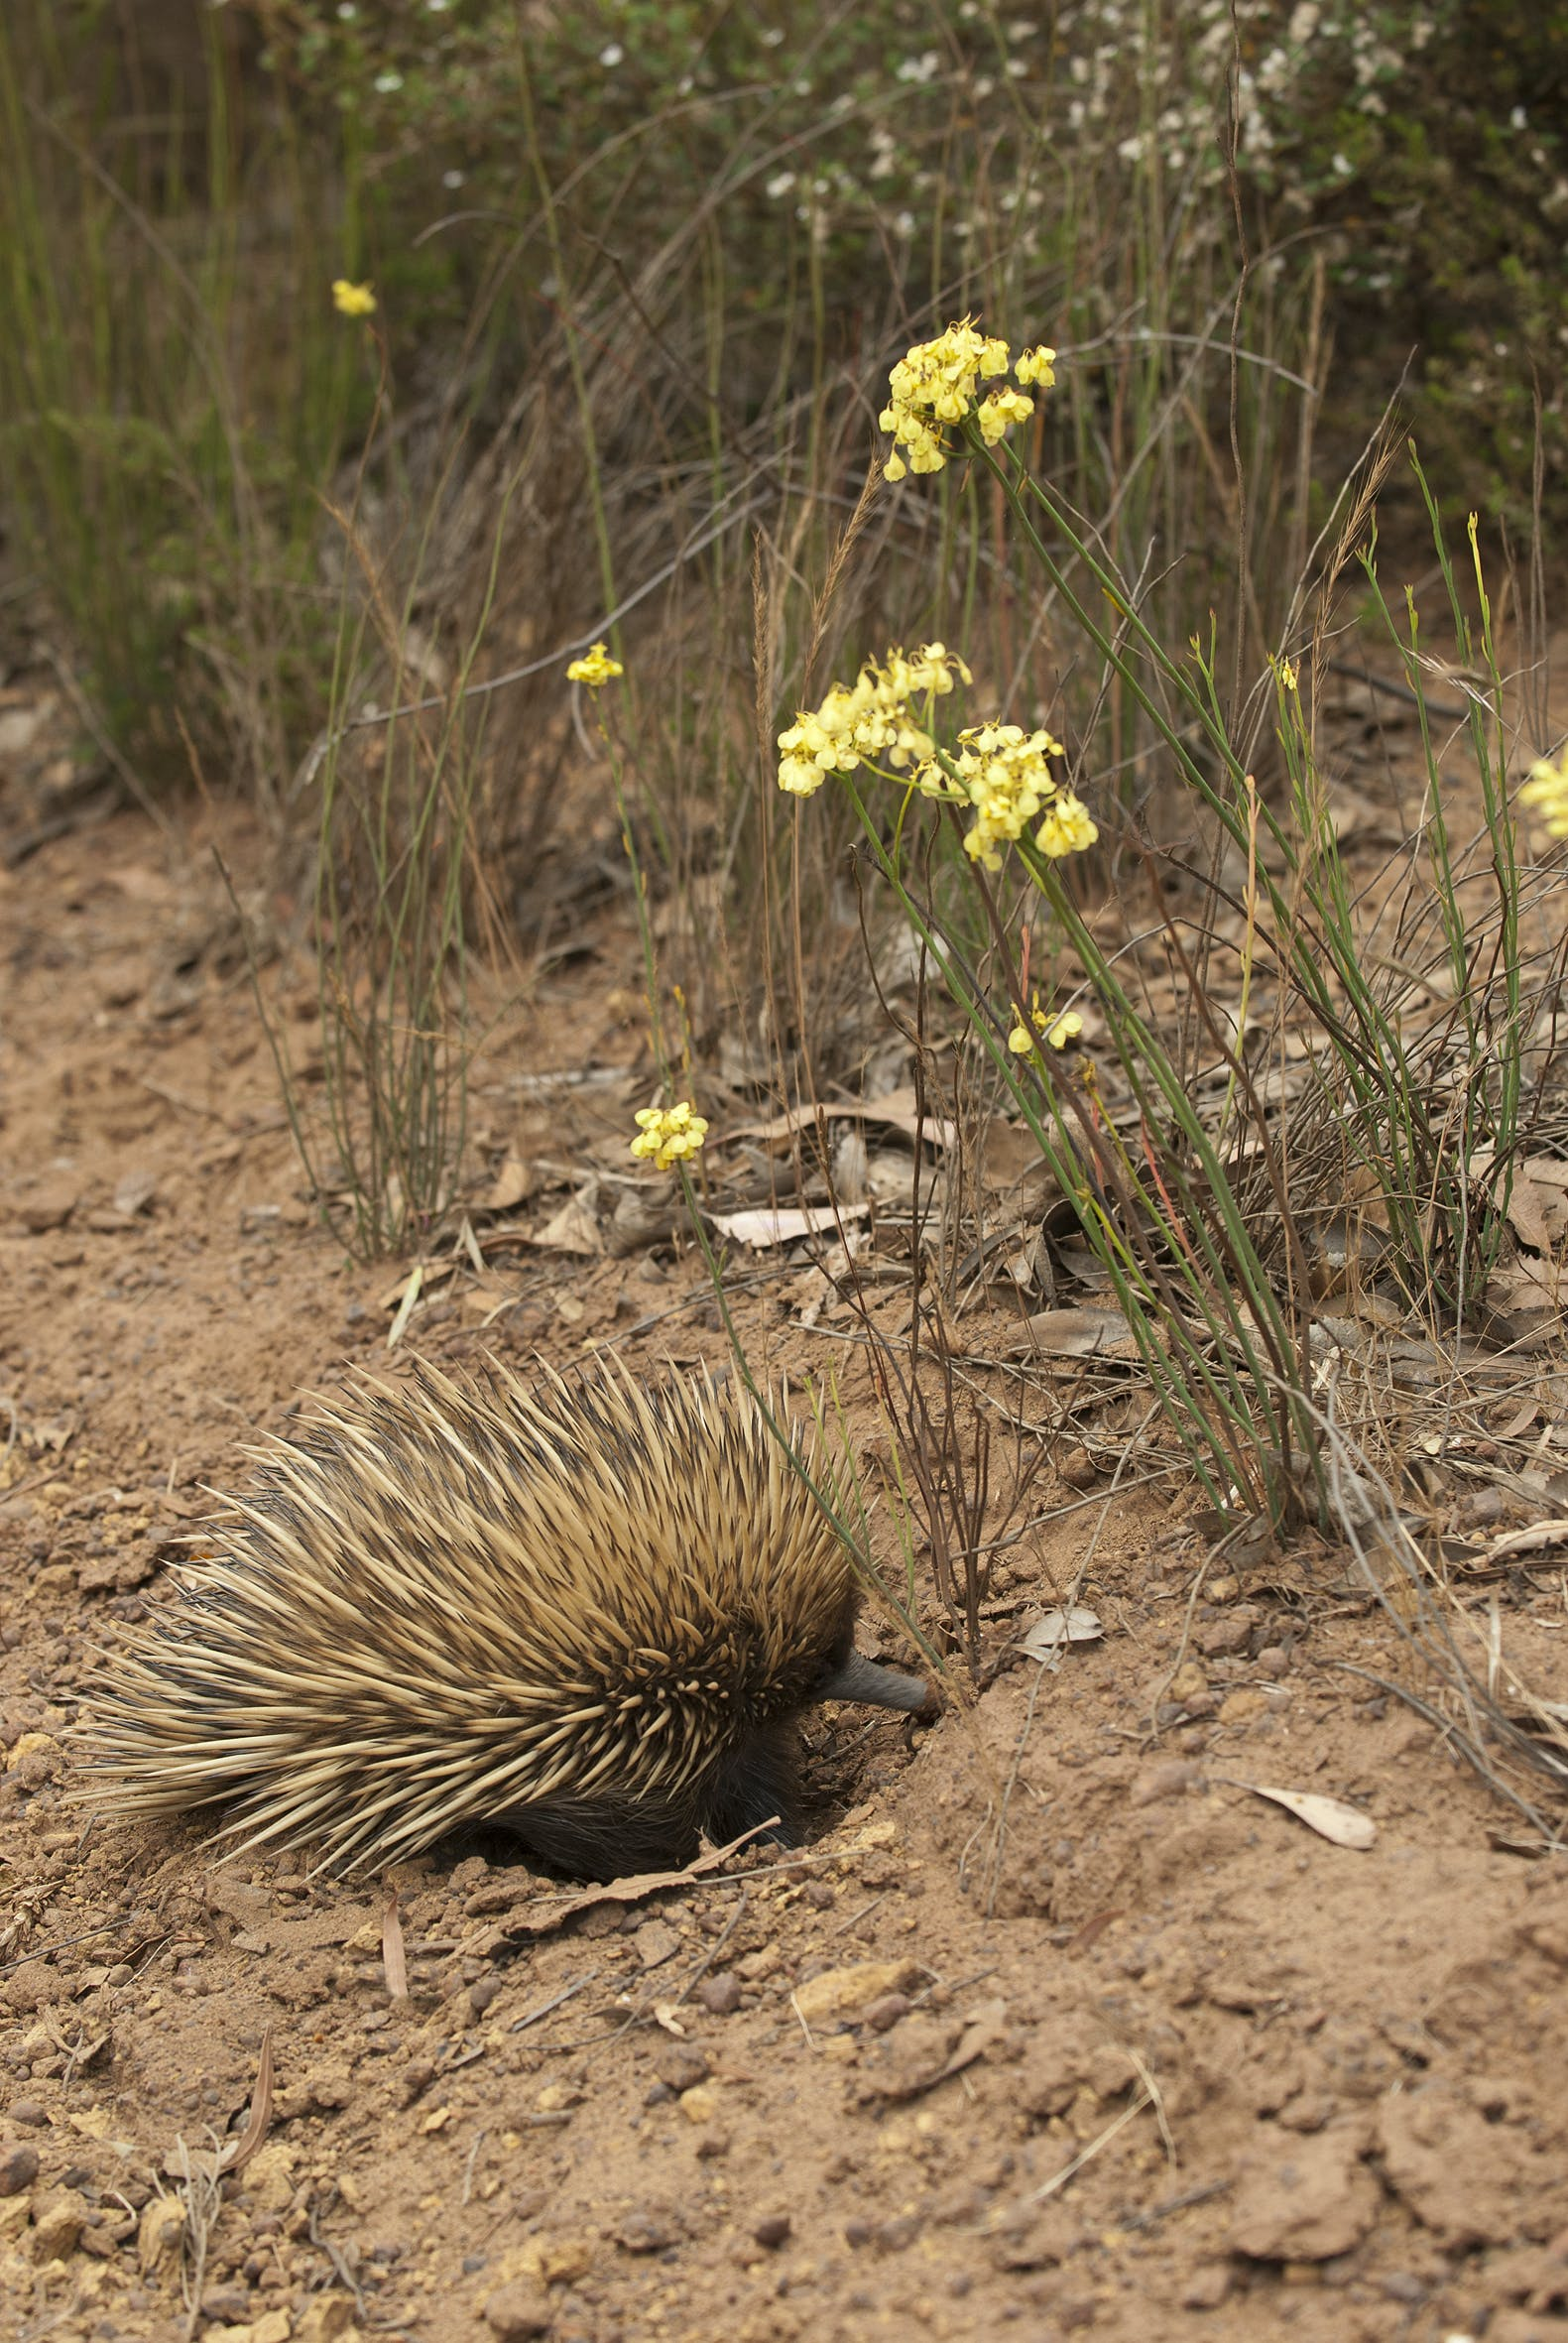 #Echidna egg-laying mammal found on Kangaroo Island